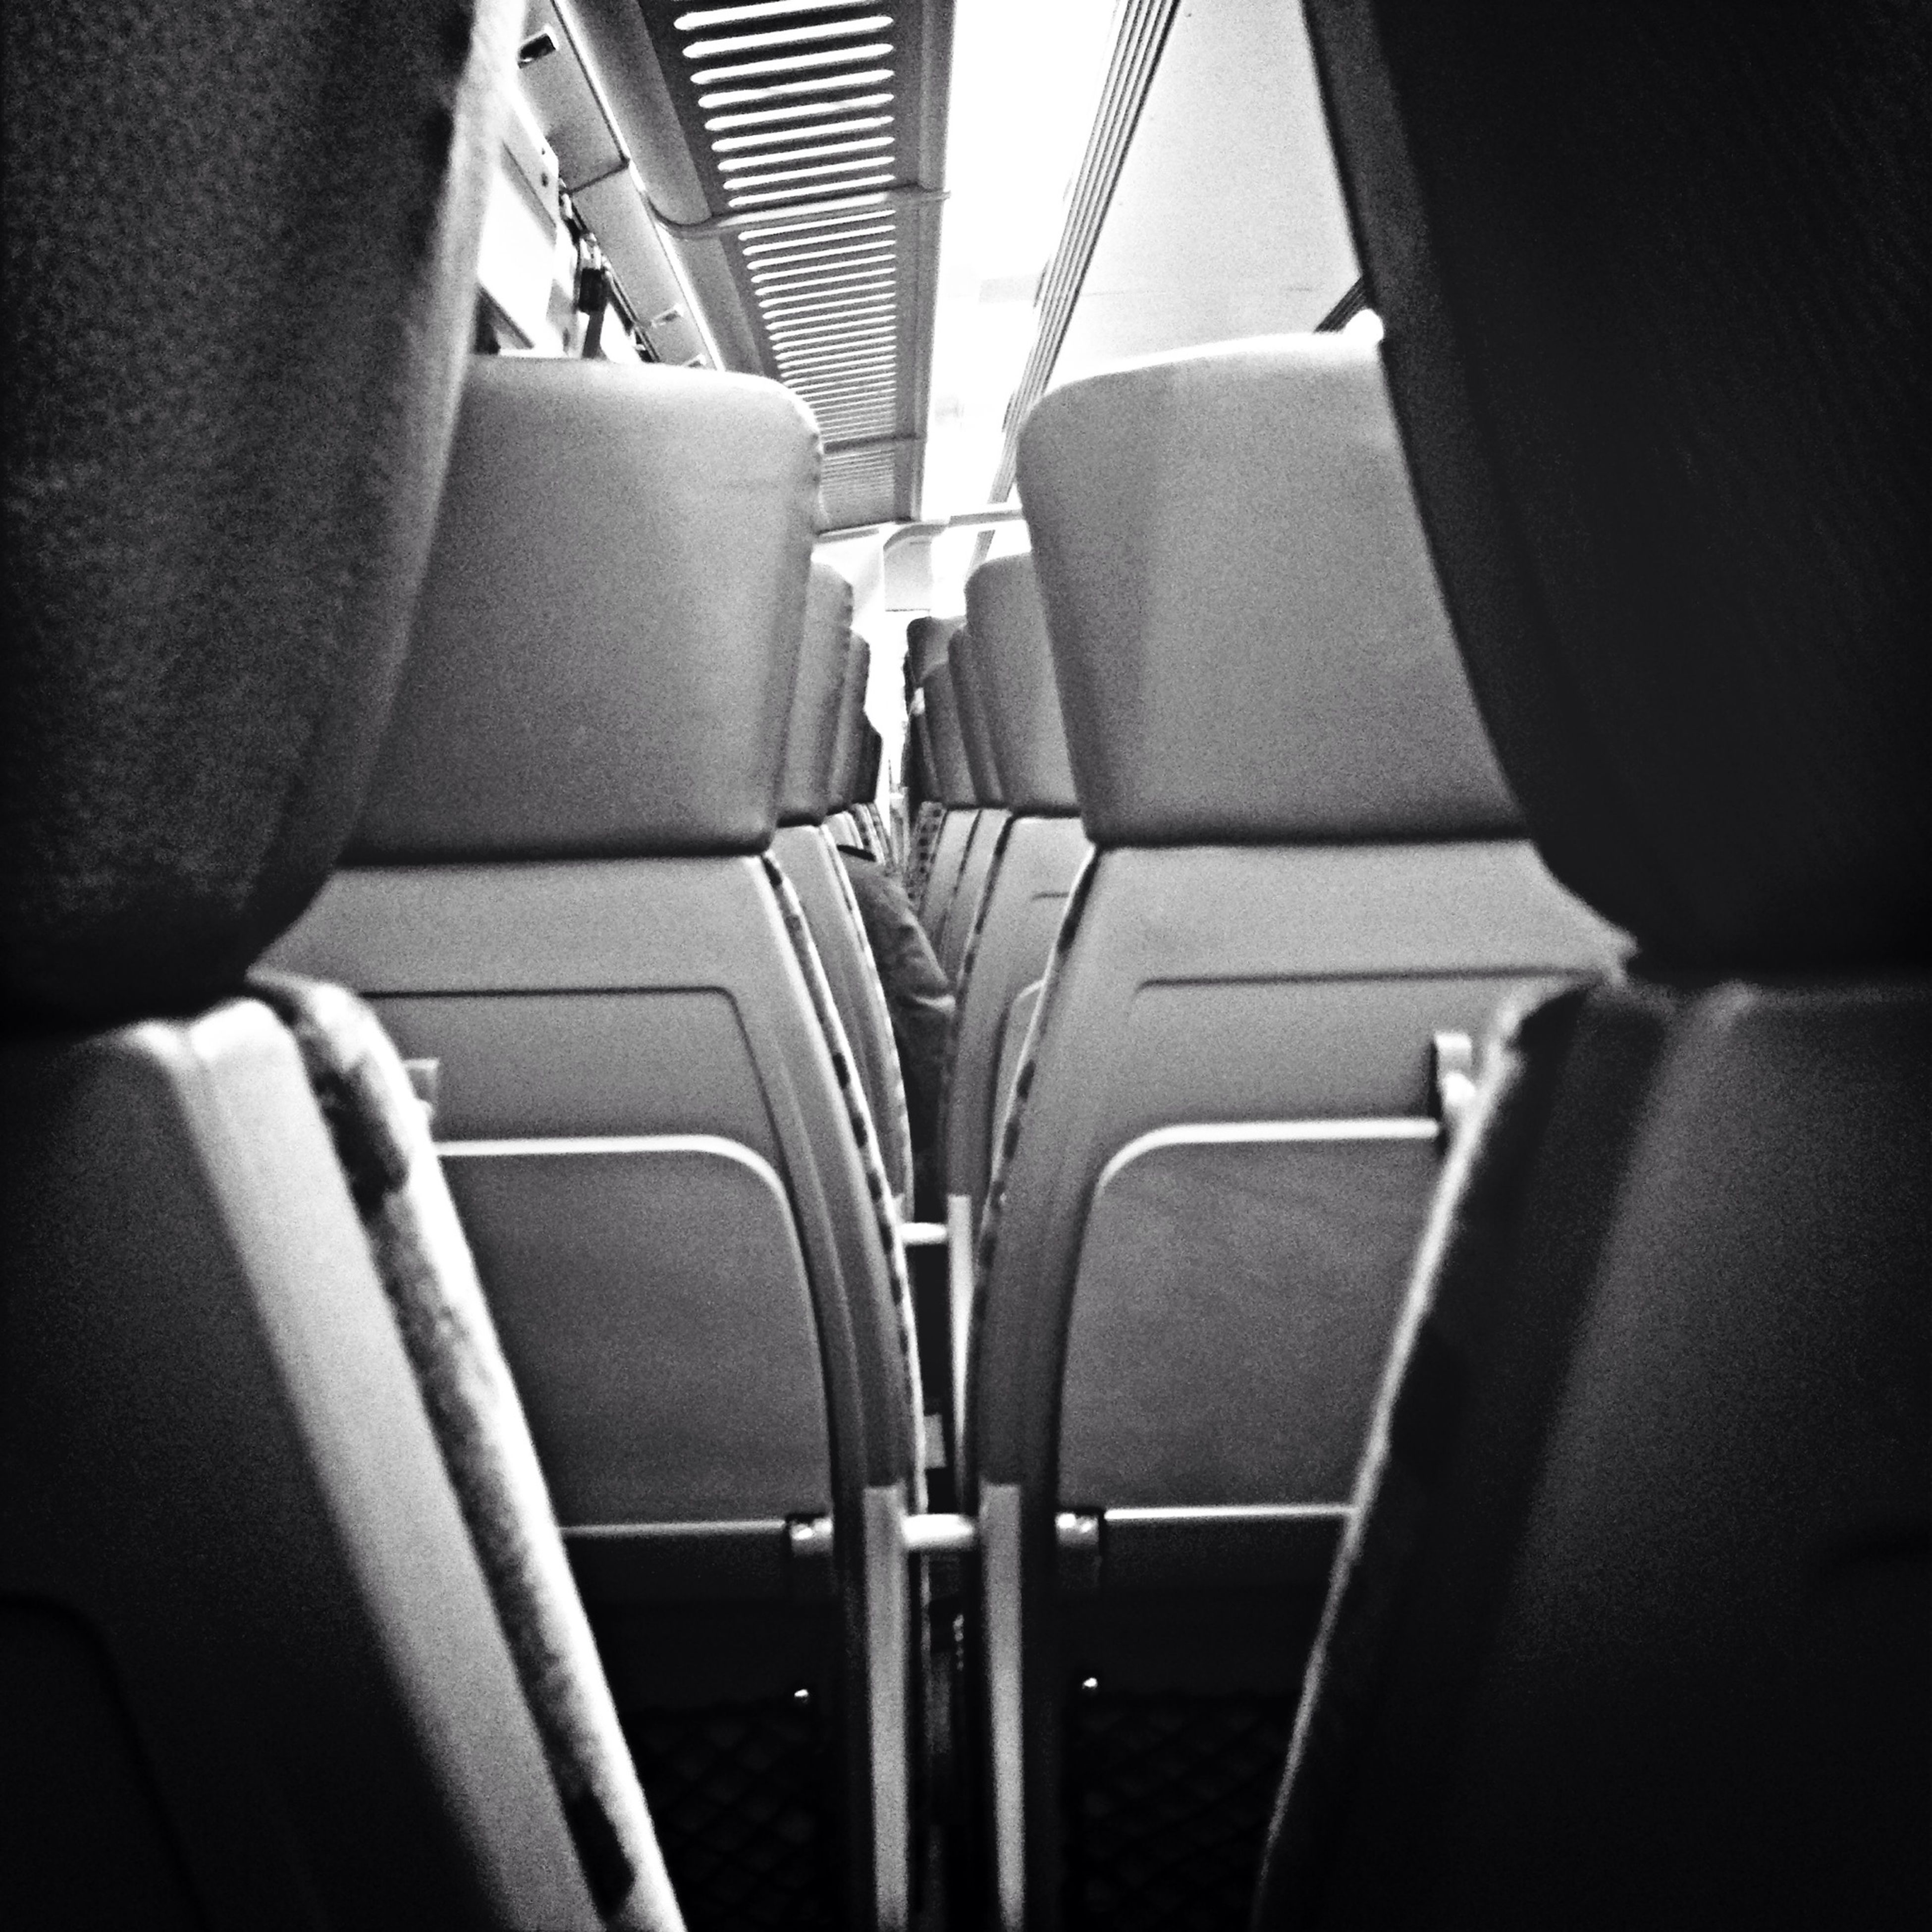 indoors, chair, seat, in a row, vehicle interior, vehicle seat, transportation, empty, repetition, absence, mode of transport, order, relaxation, day, side by side, window, travel, high angle view, no people, close-up